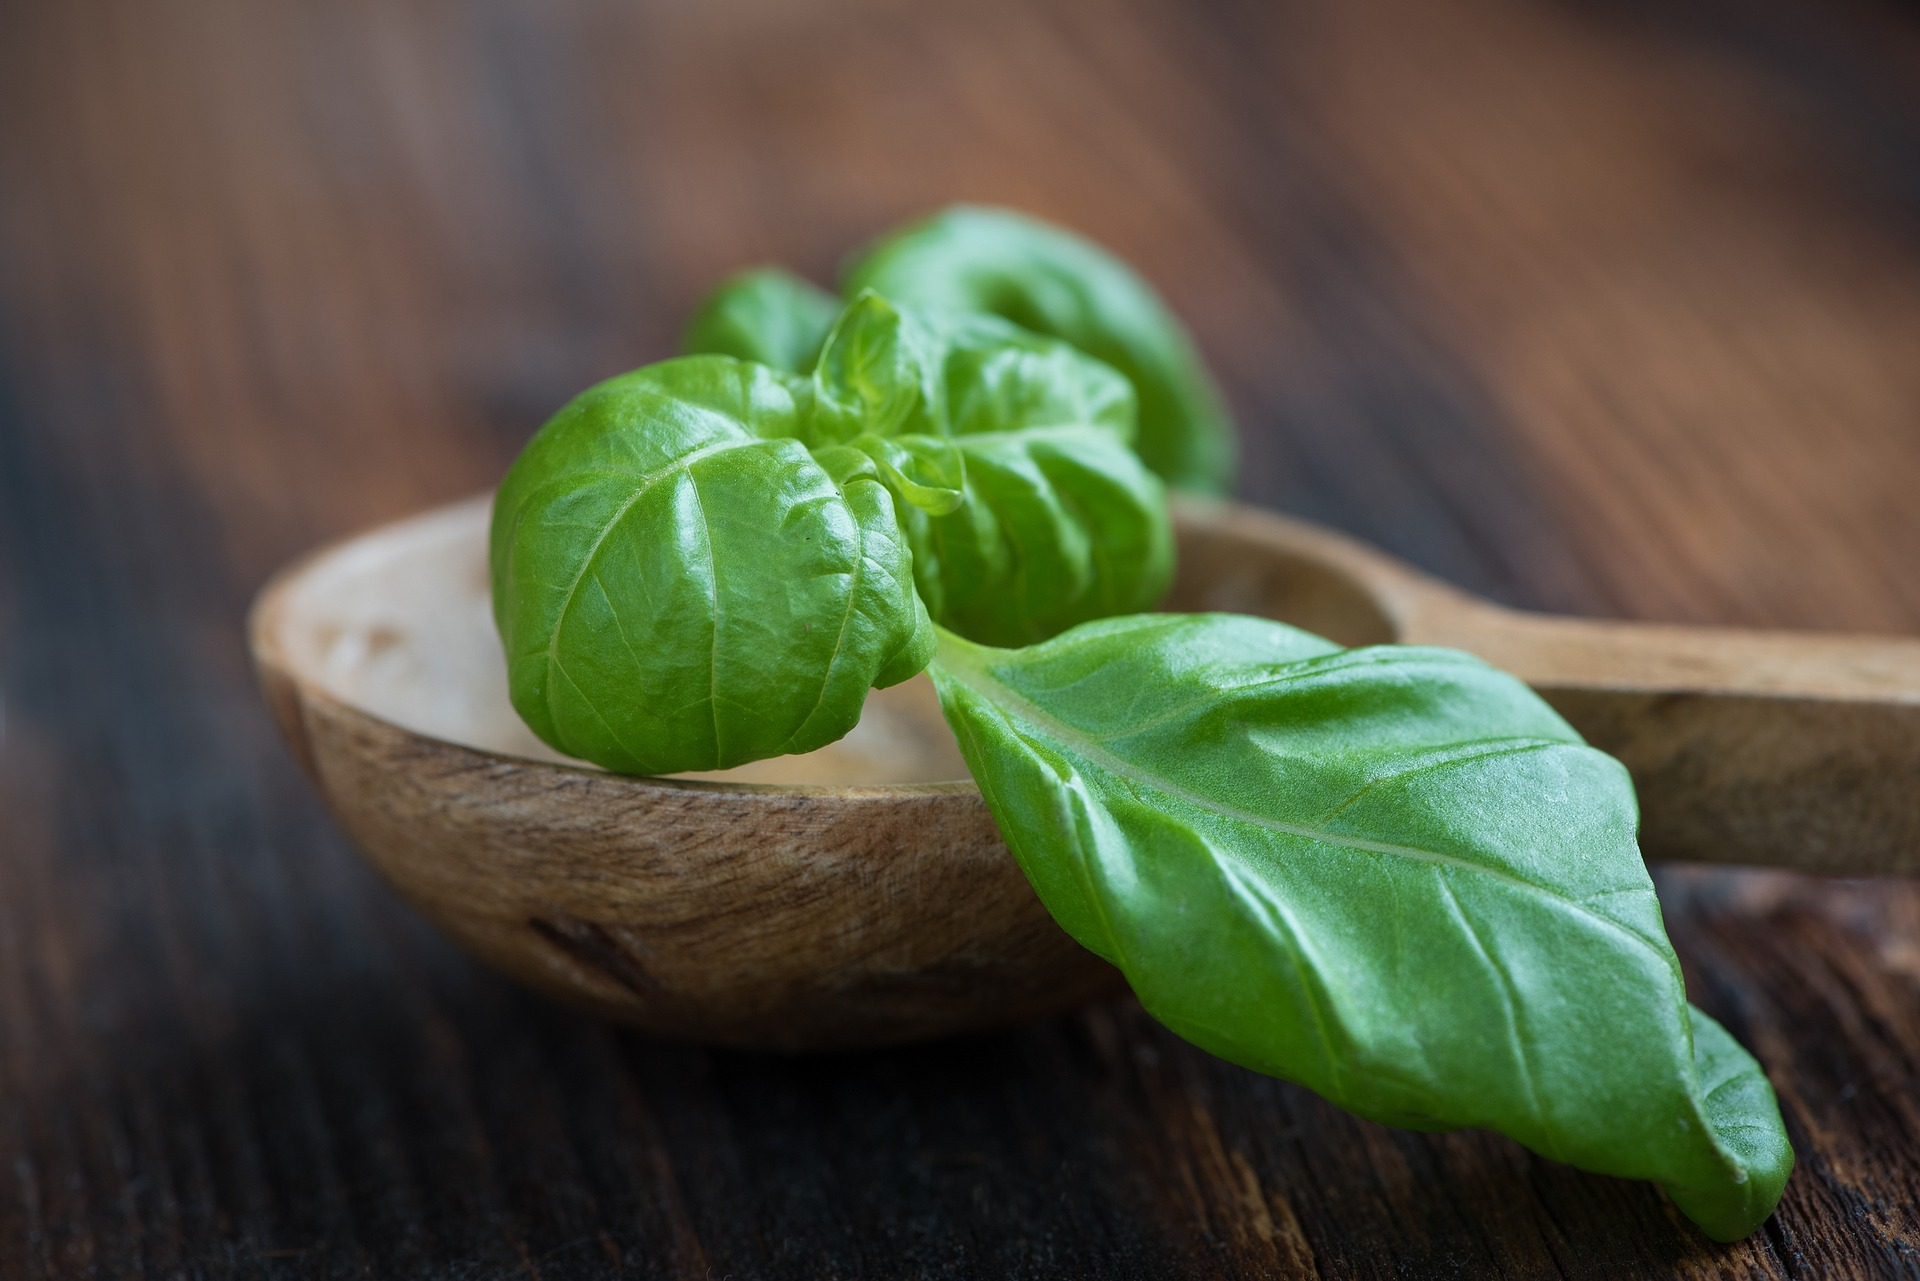 Urban farming spotlight: How to grow tasty organic basil